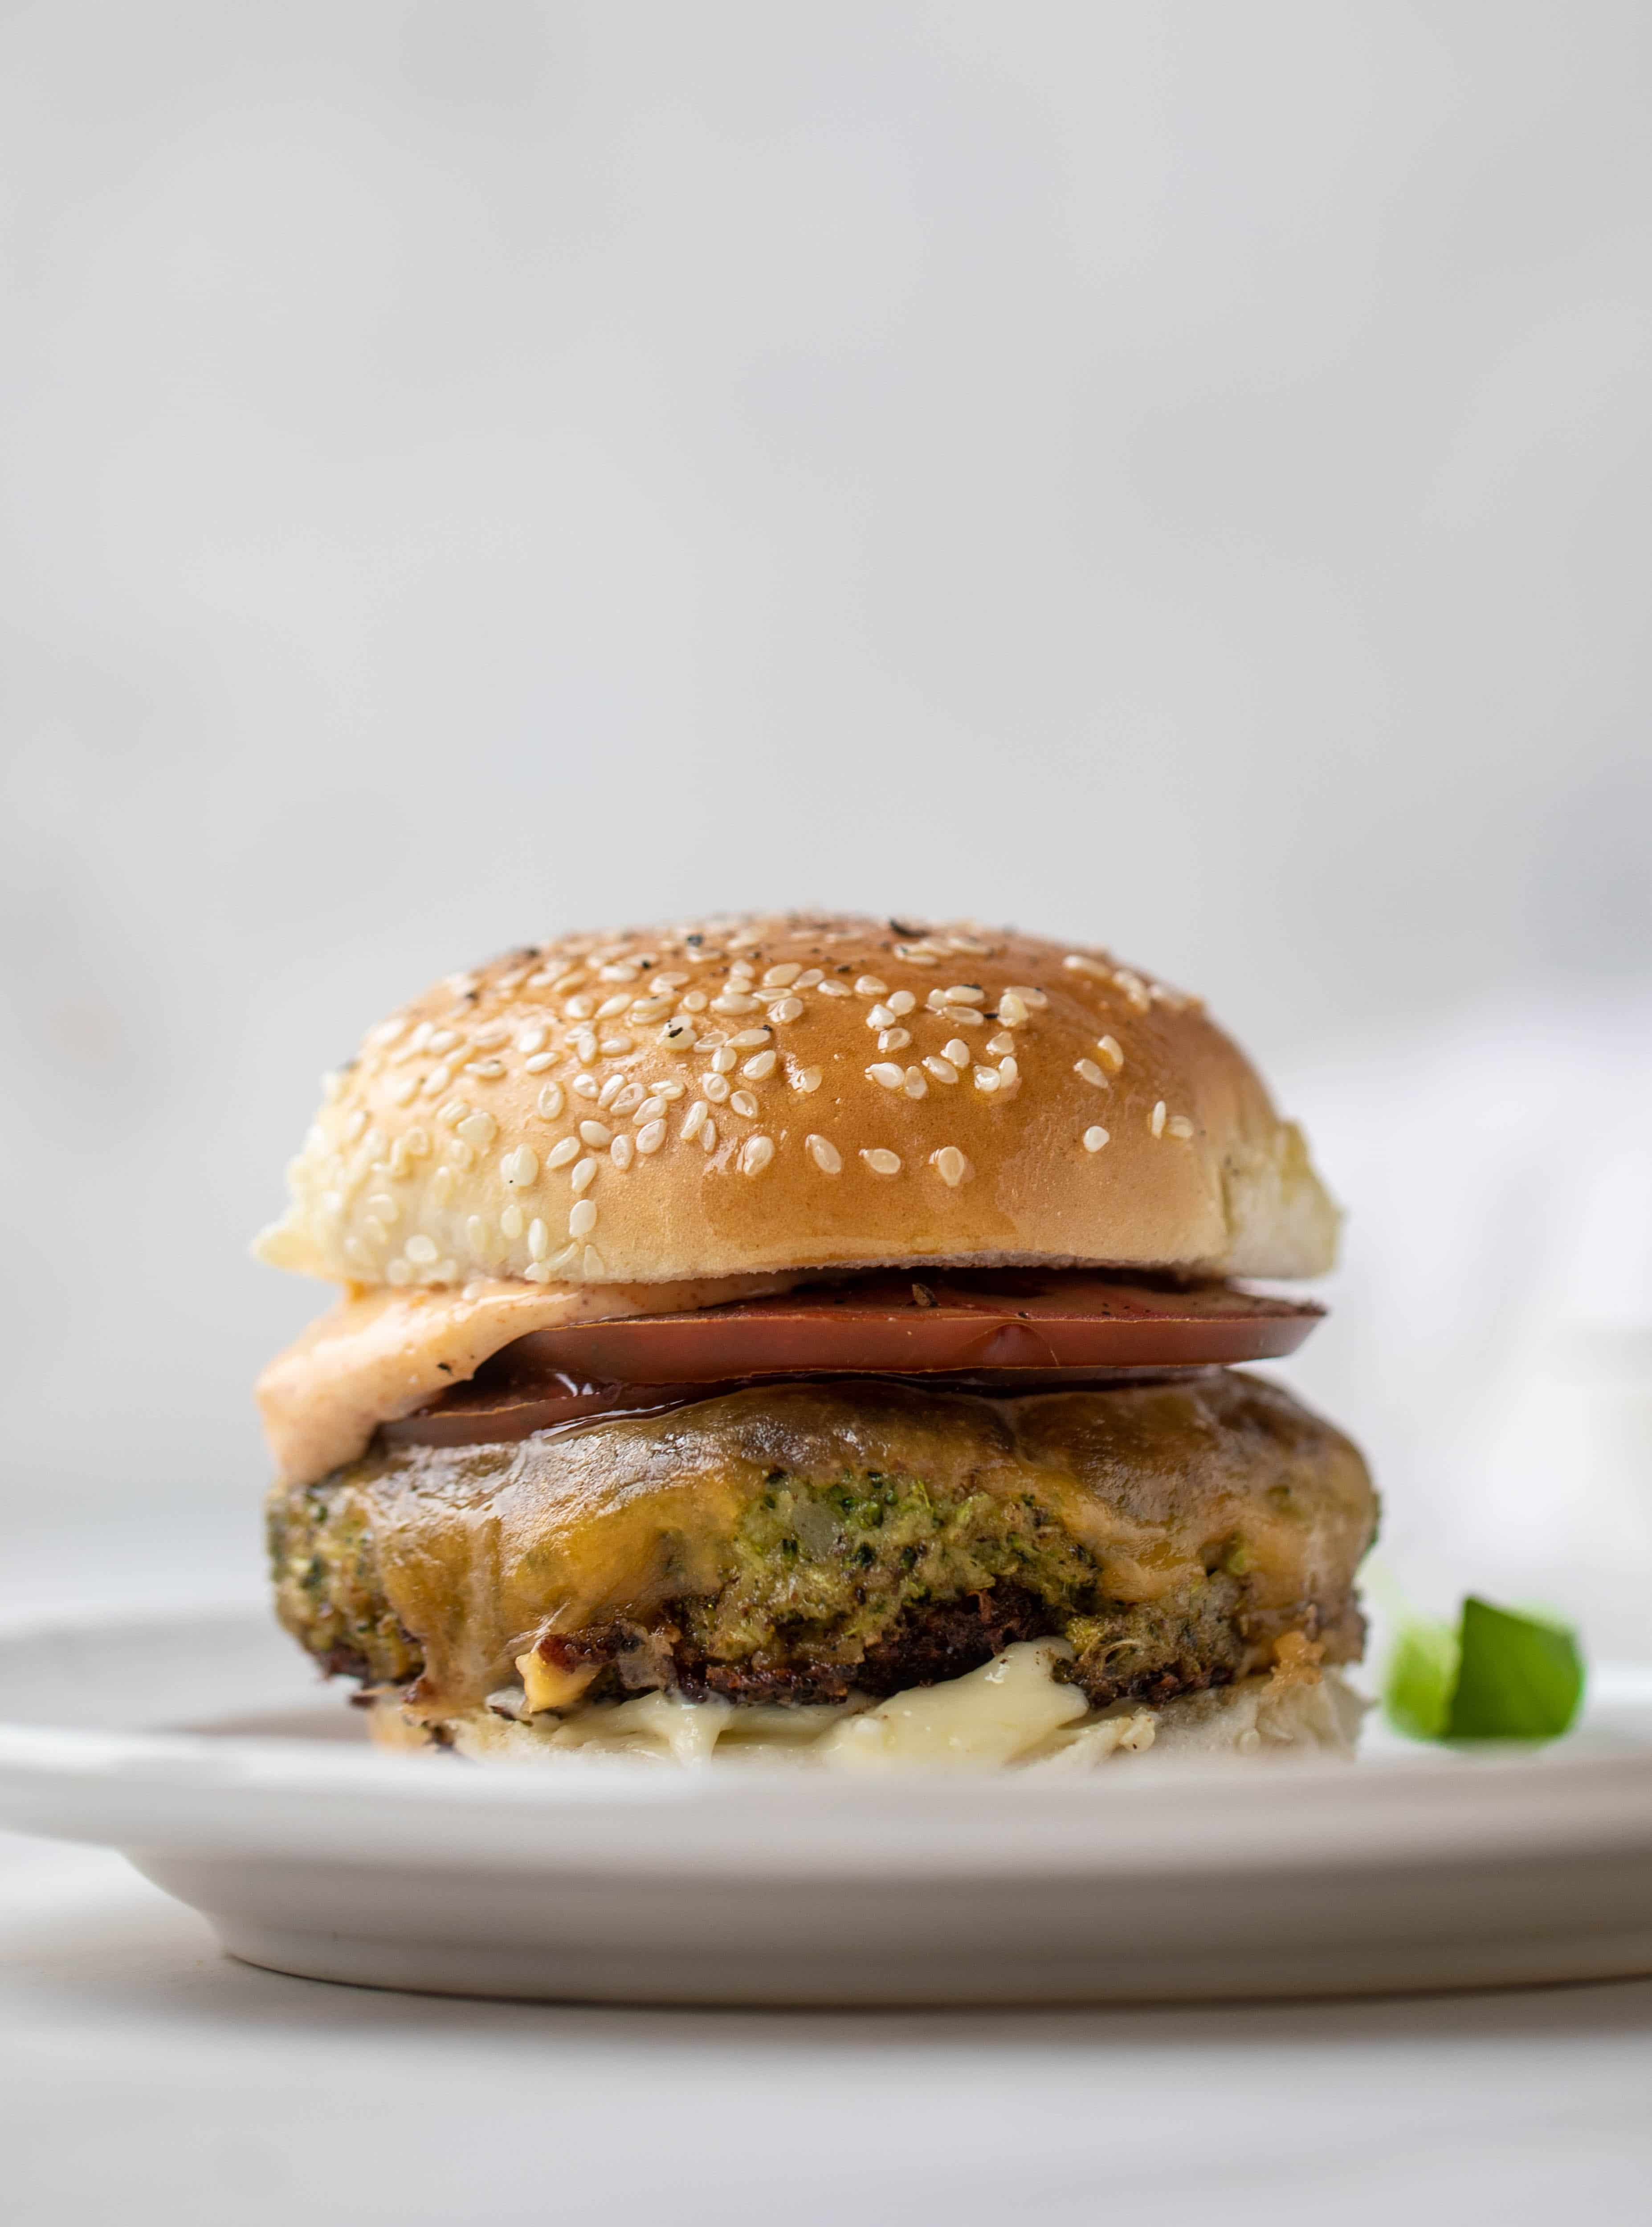 These broccoli cheddar burgers are a veggie burger dream! A little high maintenance, but packed with flavor and can be made ahead of time!